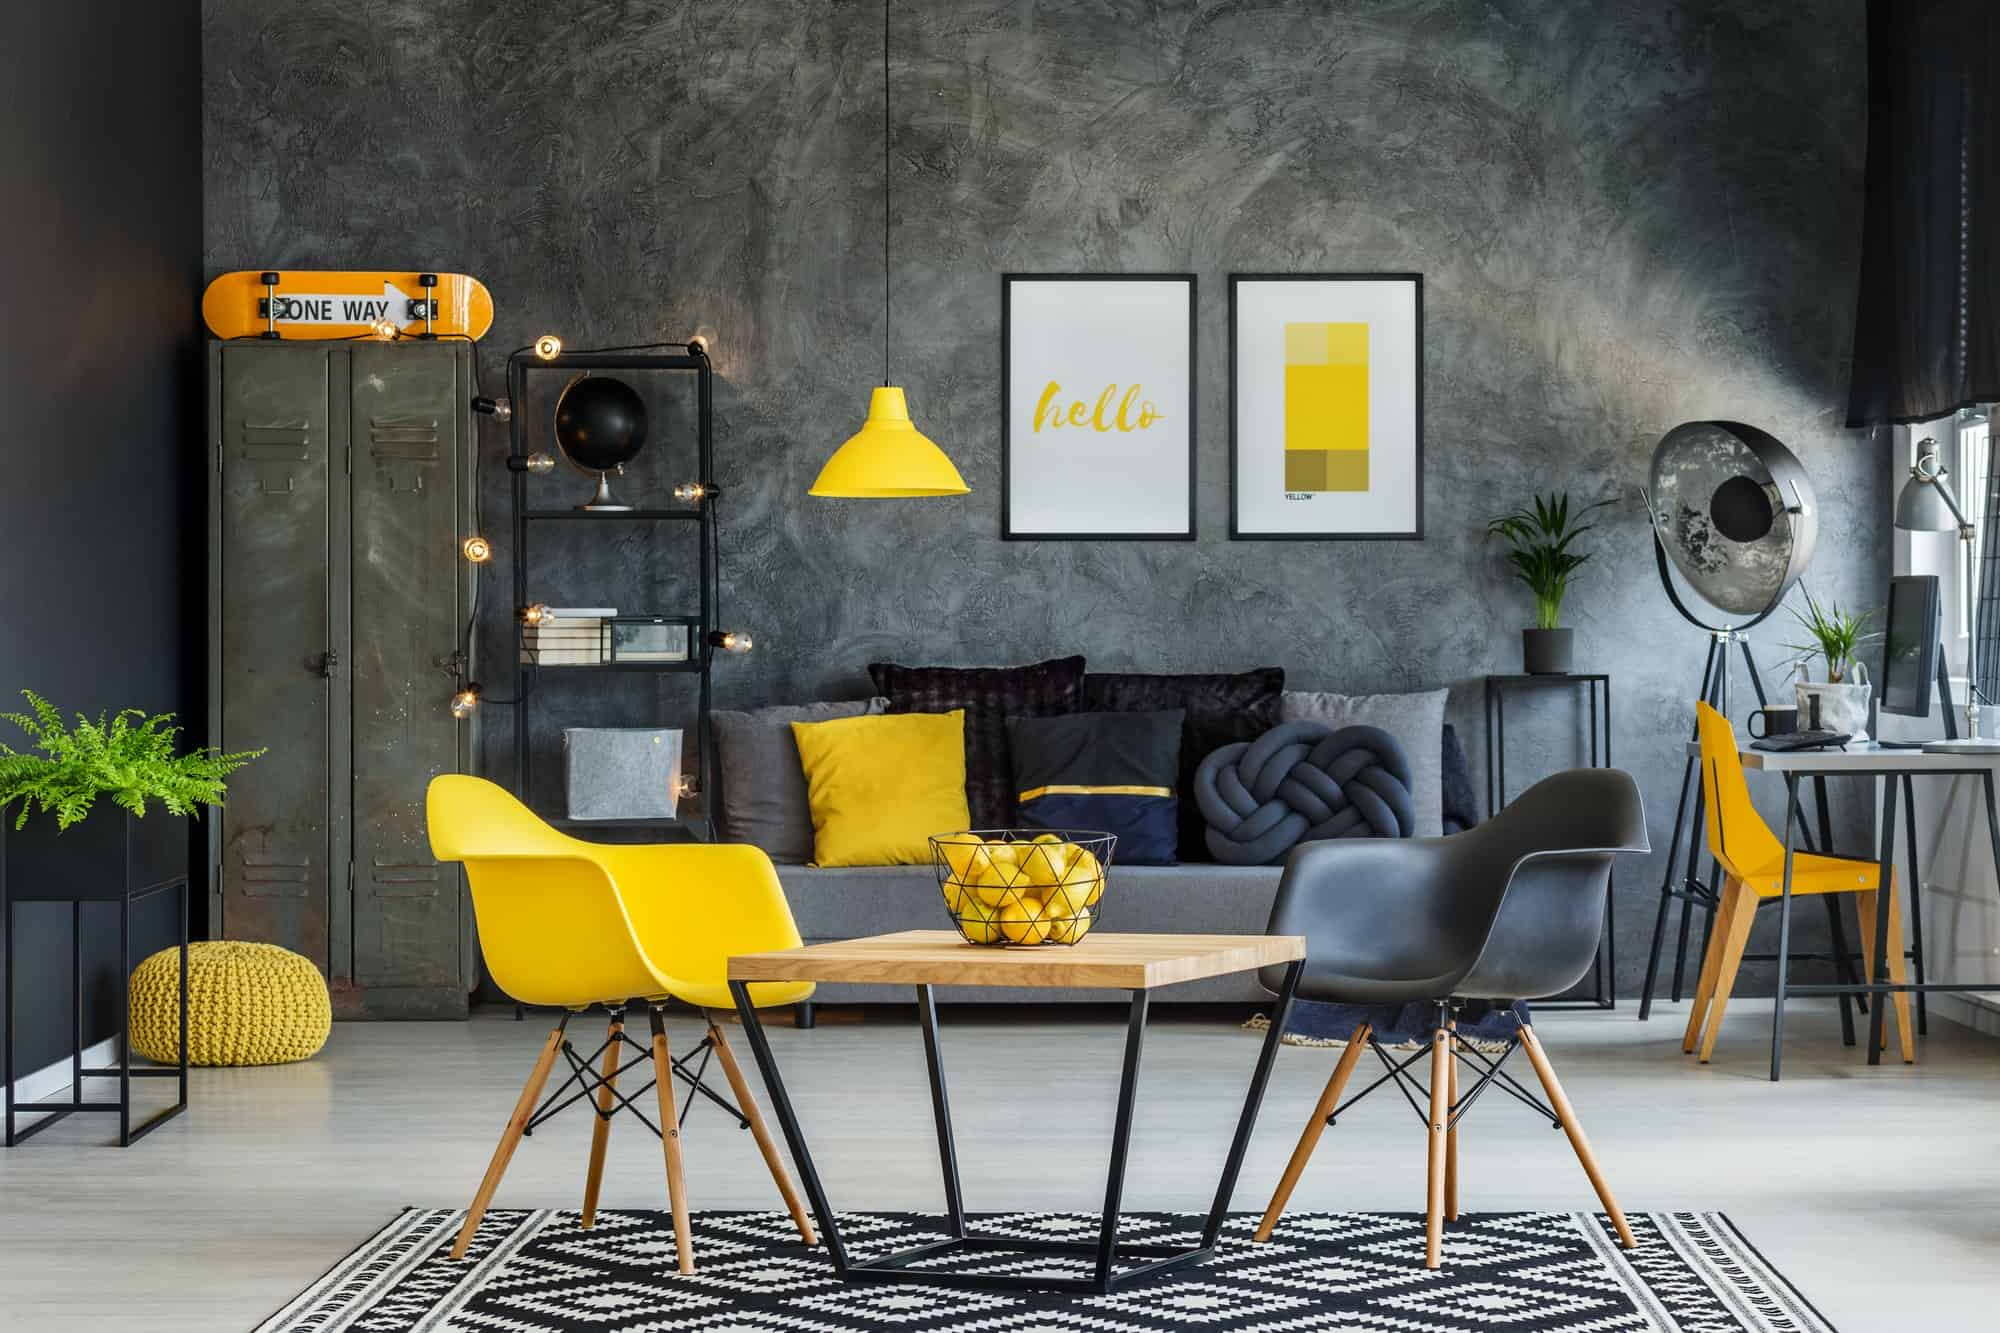 How to design a home that inspire creativity